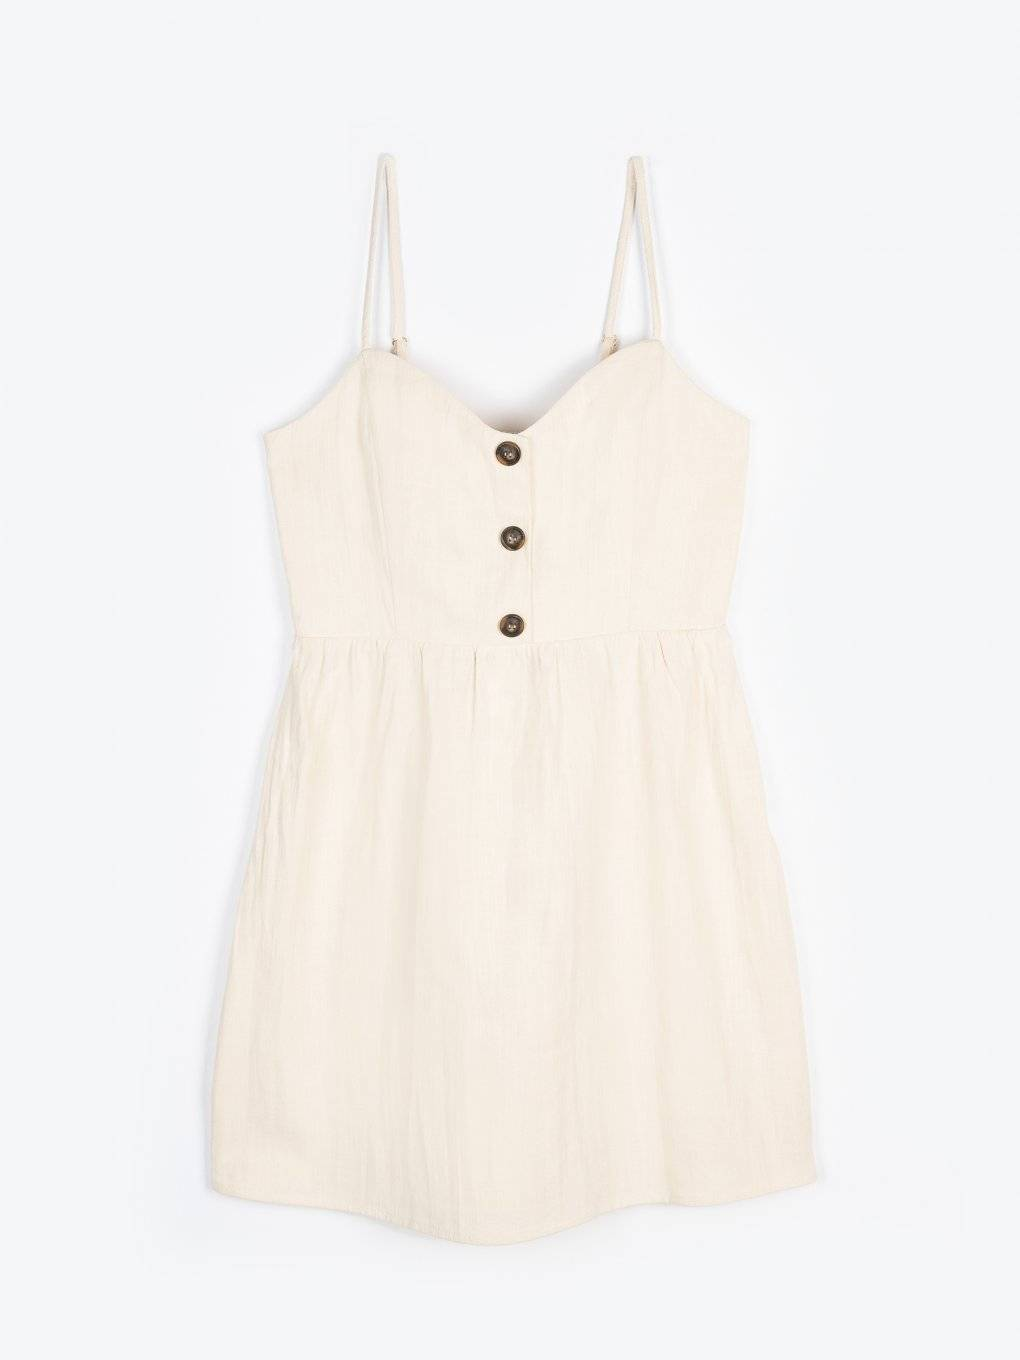 Cotton dress with buttons